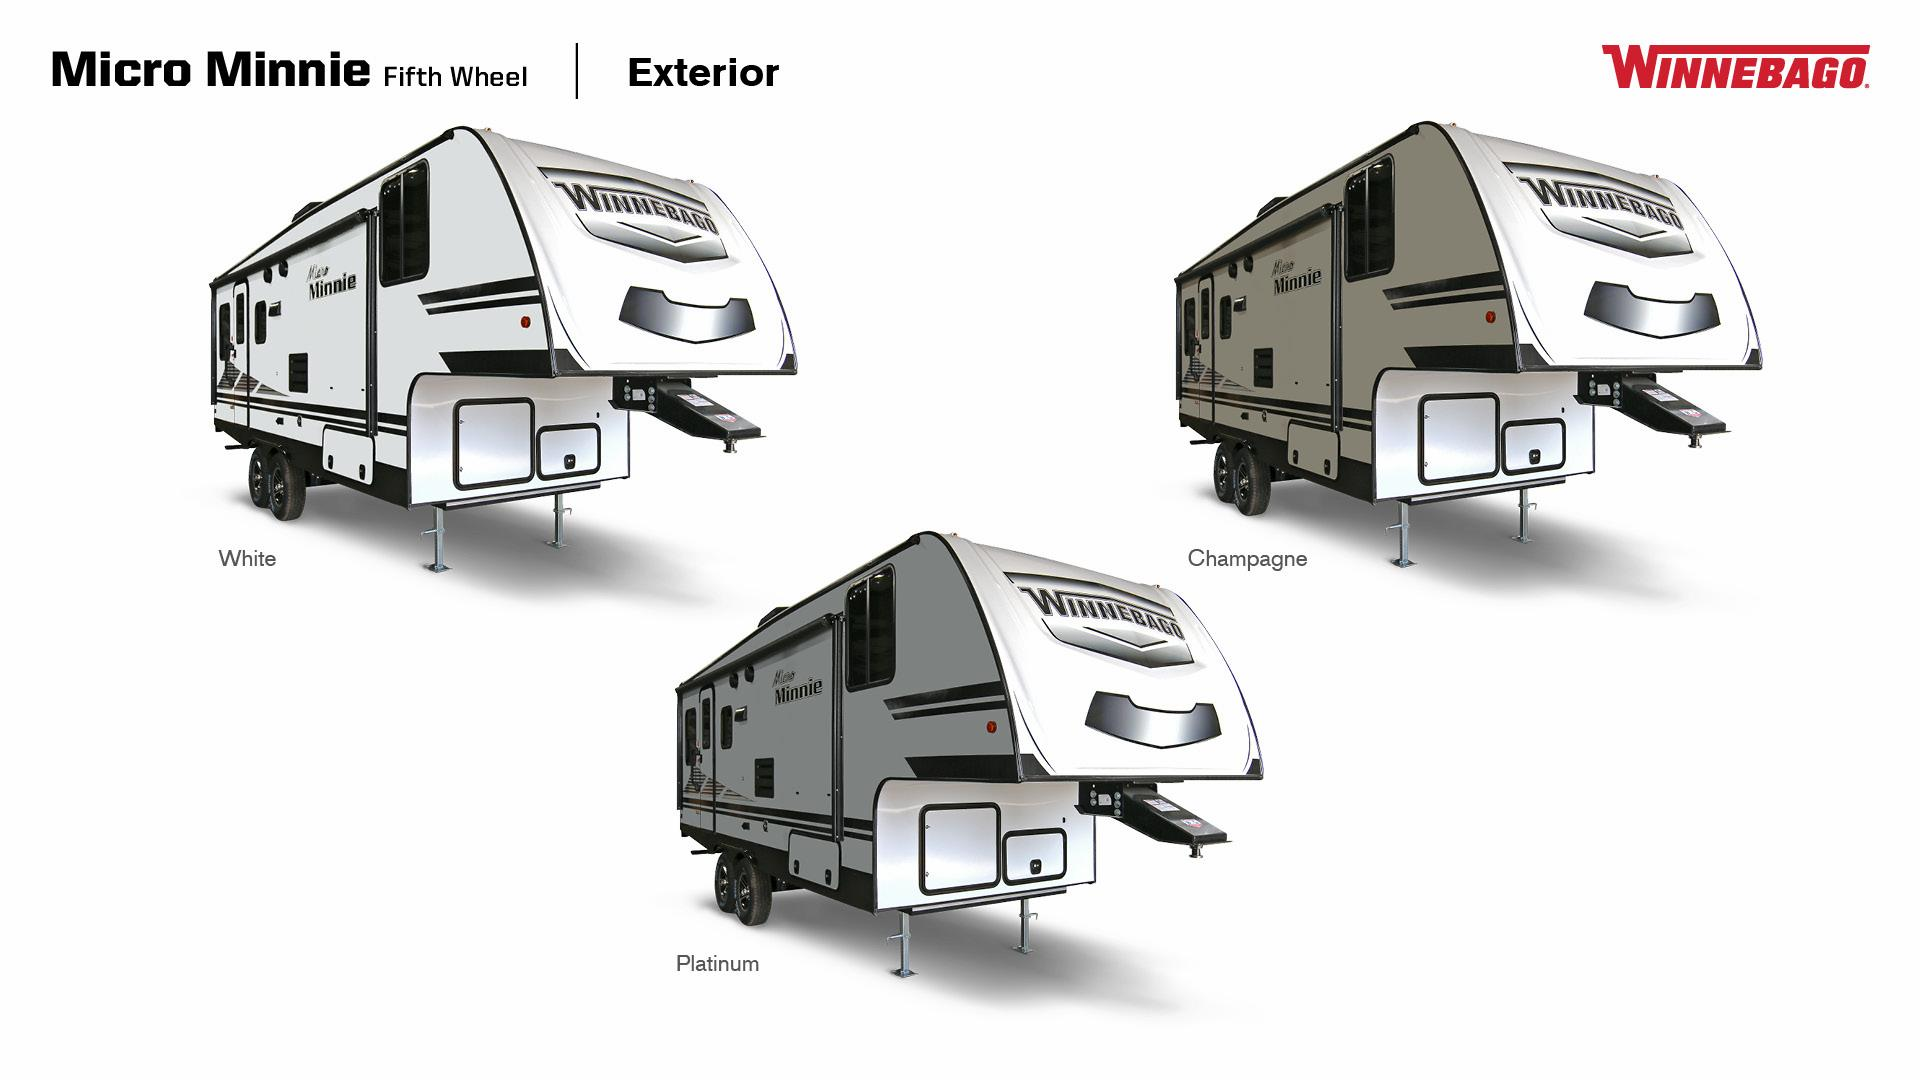 Winnebago Micro Minnie Fifth Wheel exterior in White, Platinum, and Champagne, 3/4 Side views